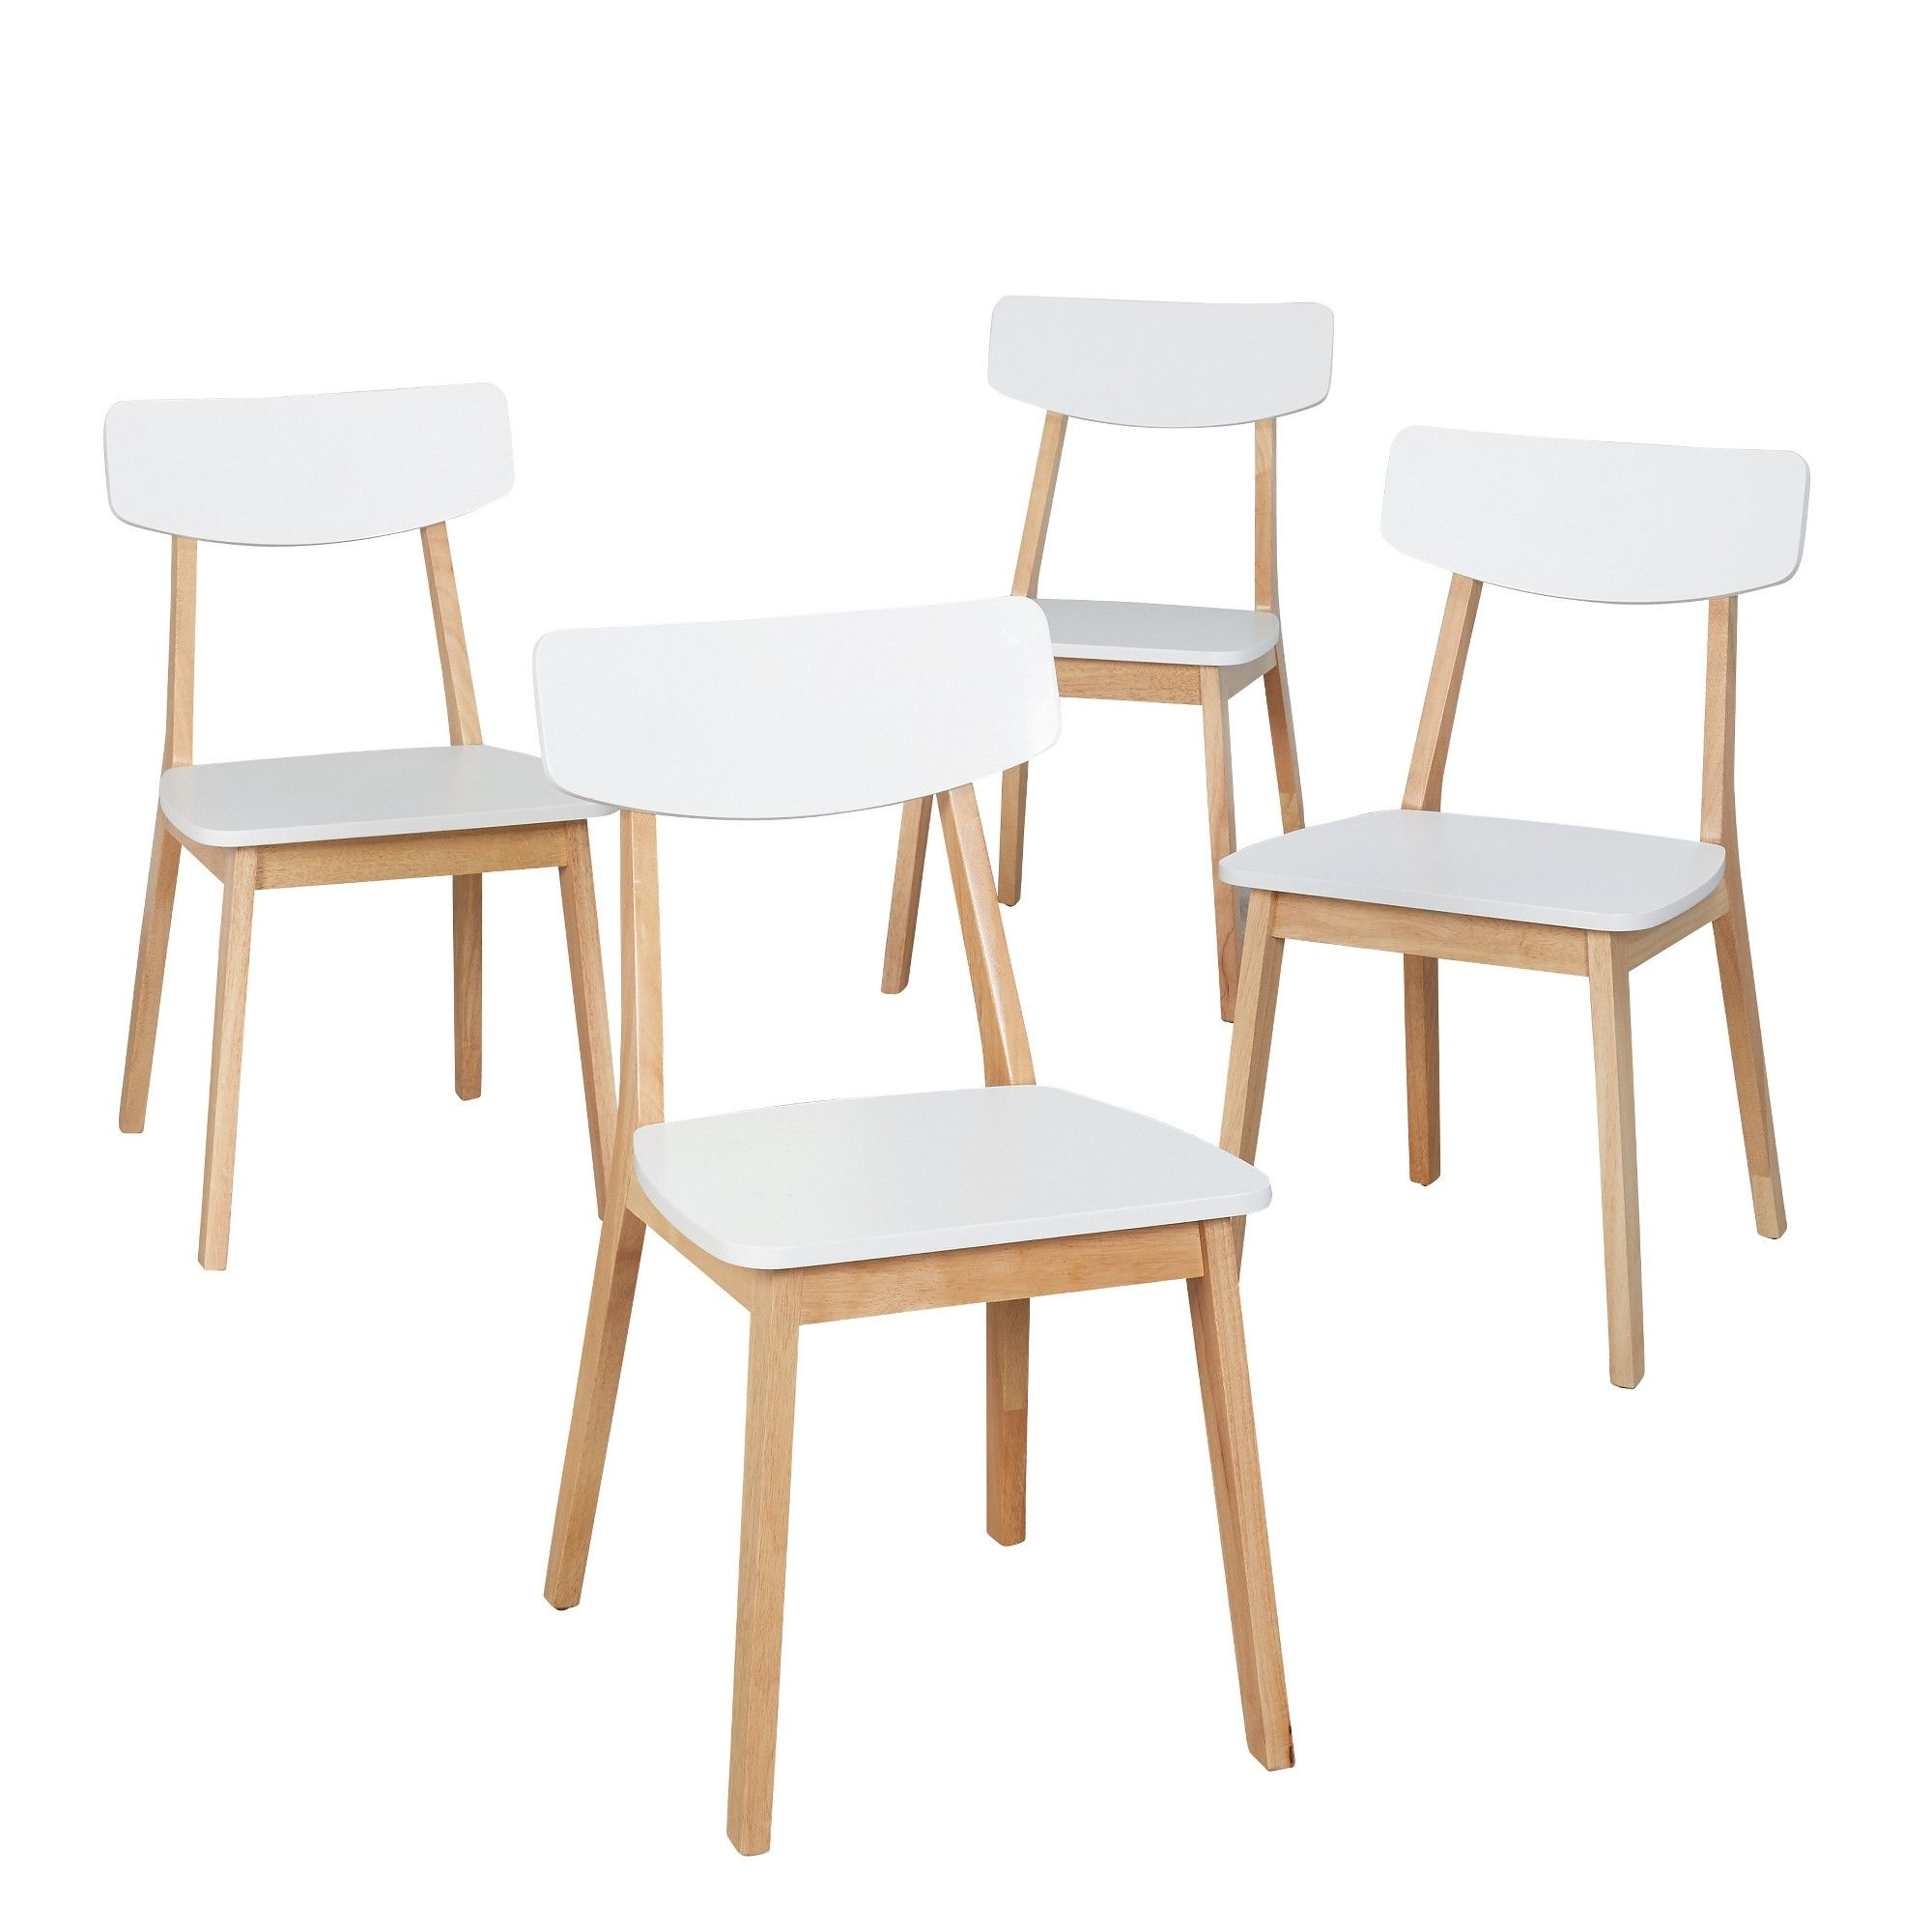 Perla Dining Chair Set Of 4 White Natural Buylateral Dining Chairs Solid Wood Dining Chairs Dining Chair Set Dining chair set of 4